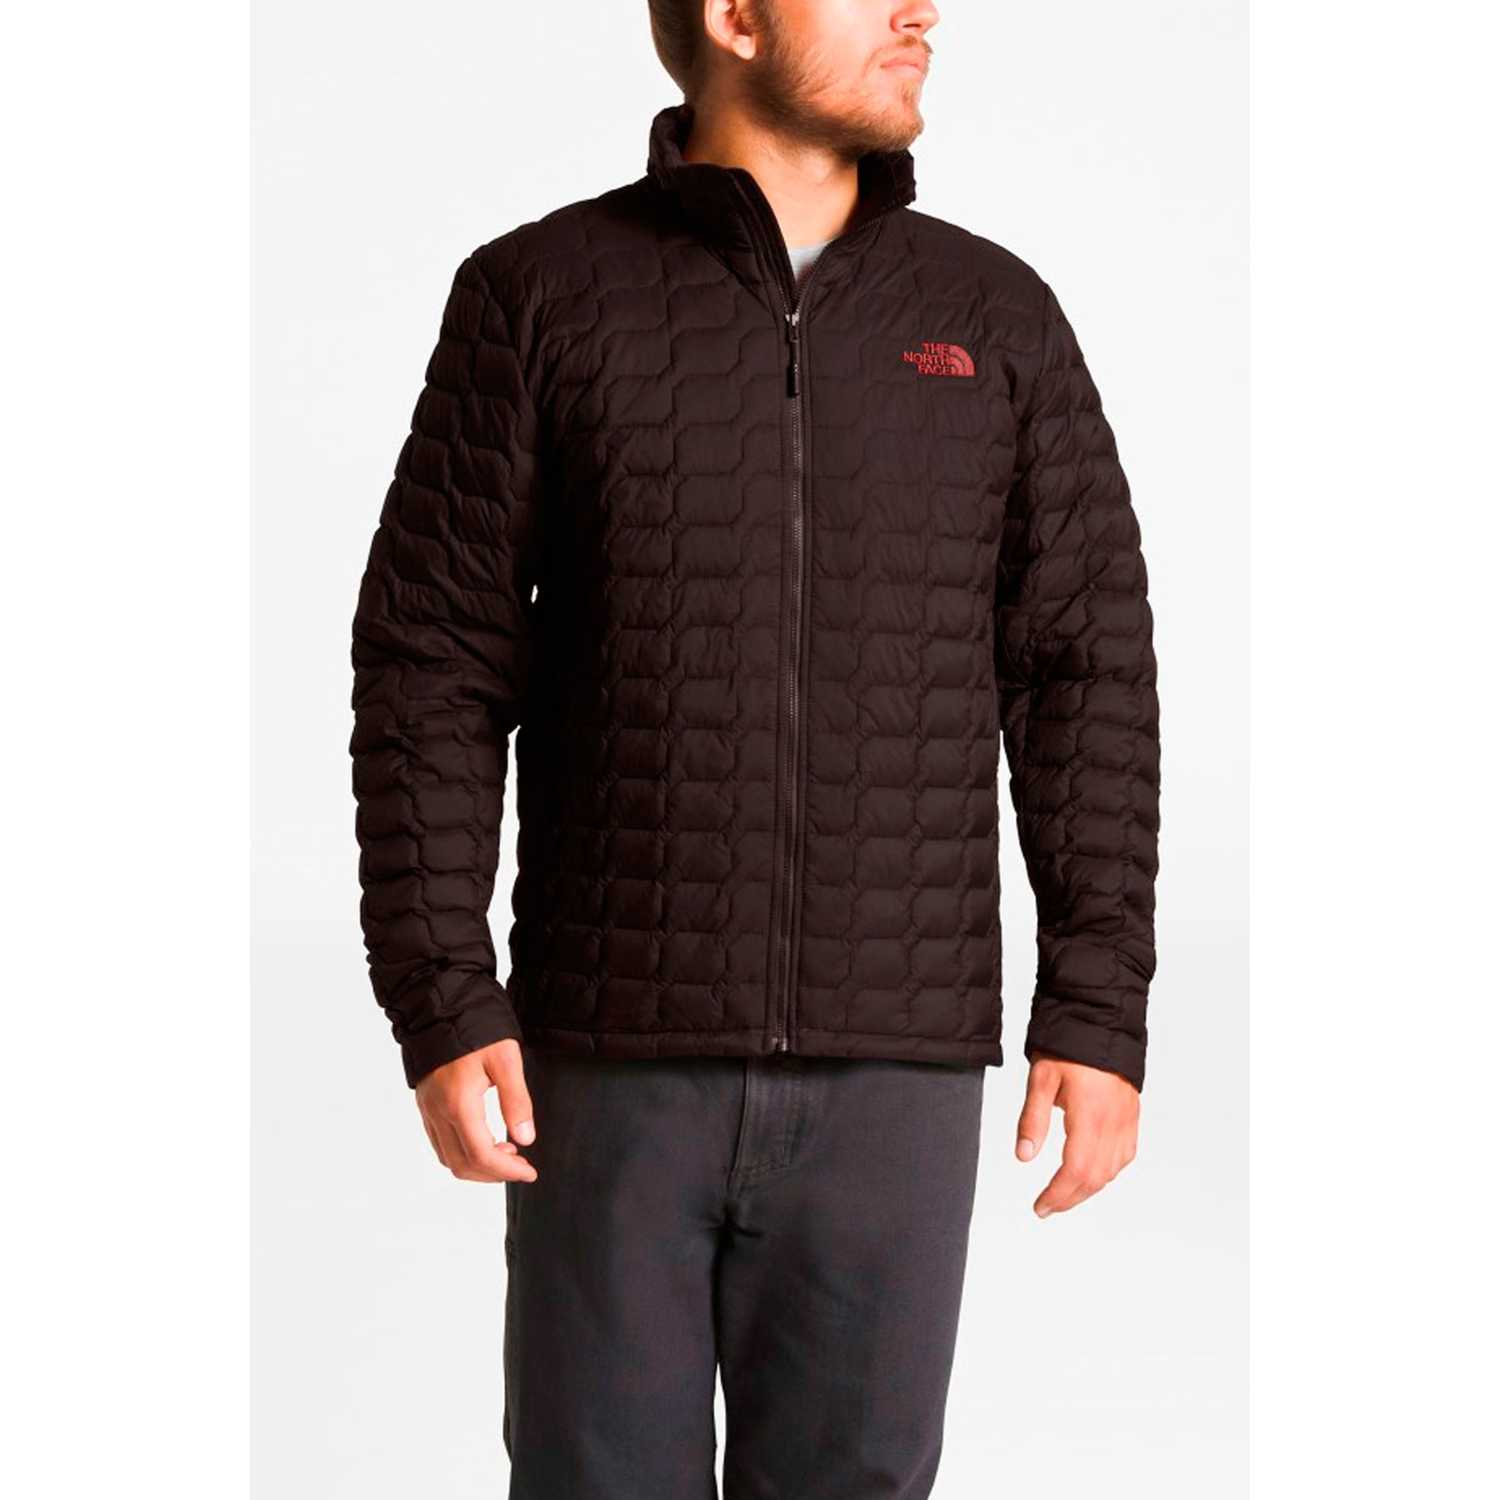 Casaca de Hombre The North Face Marron m thermoball jacket